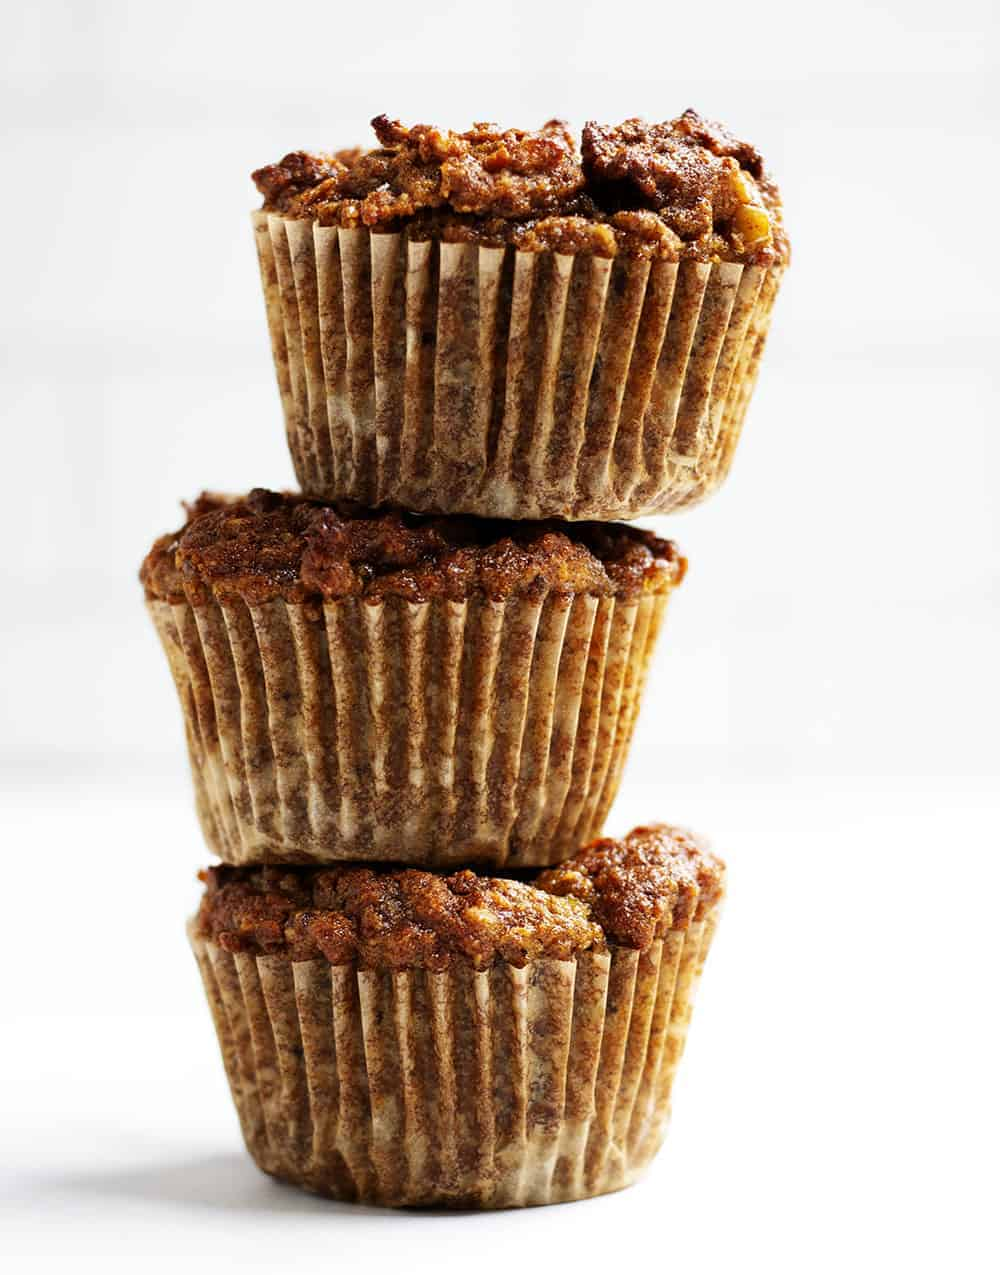 Almond Flour Muffins Stacked